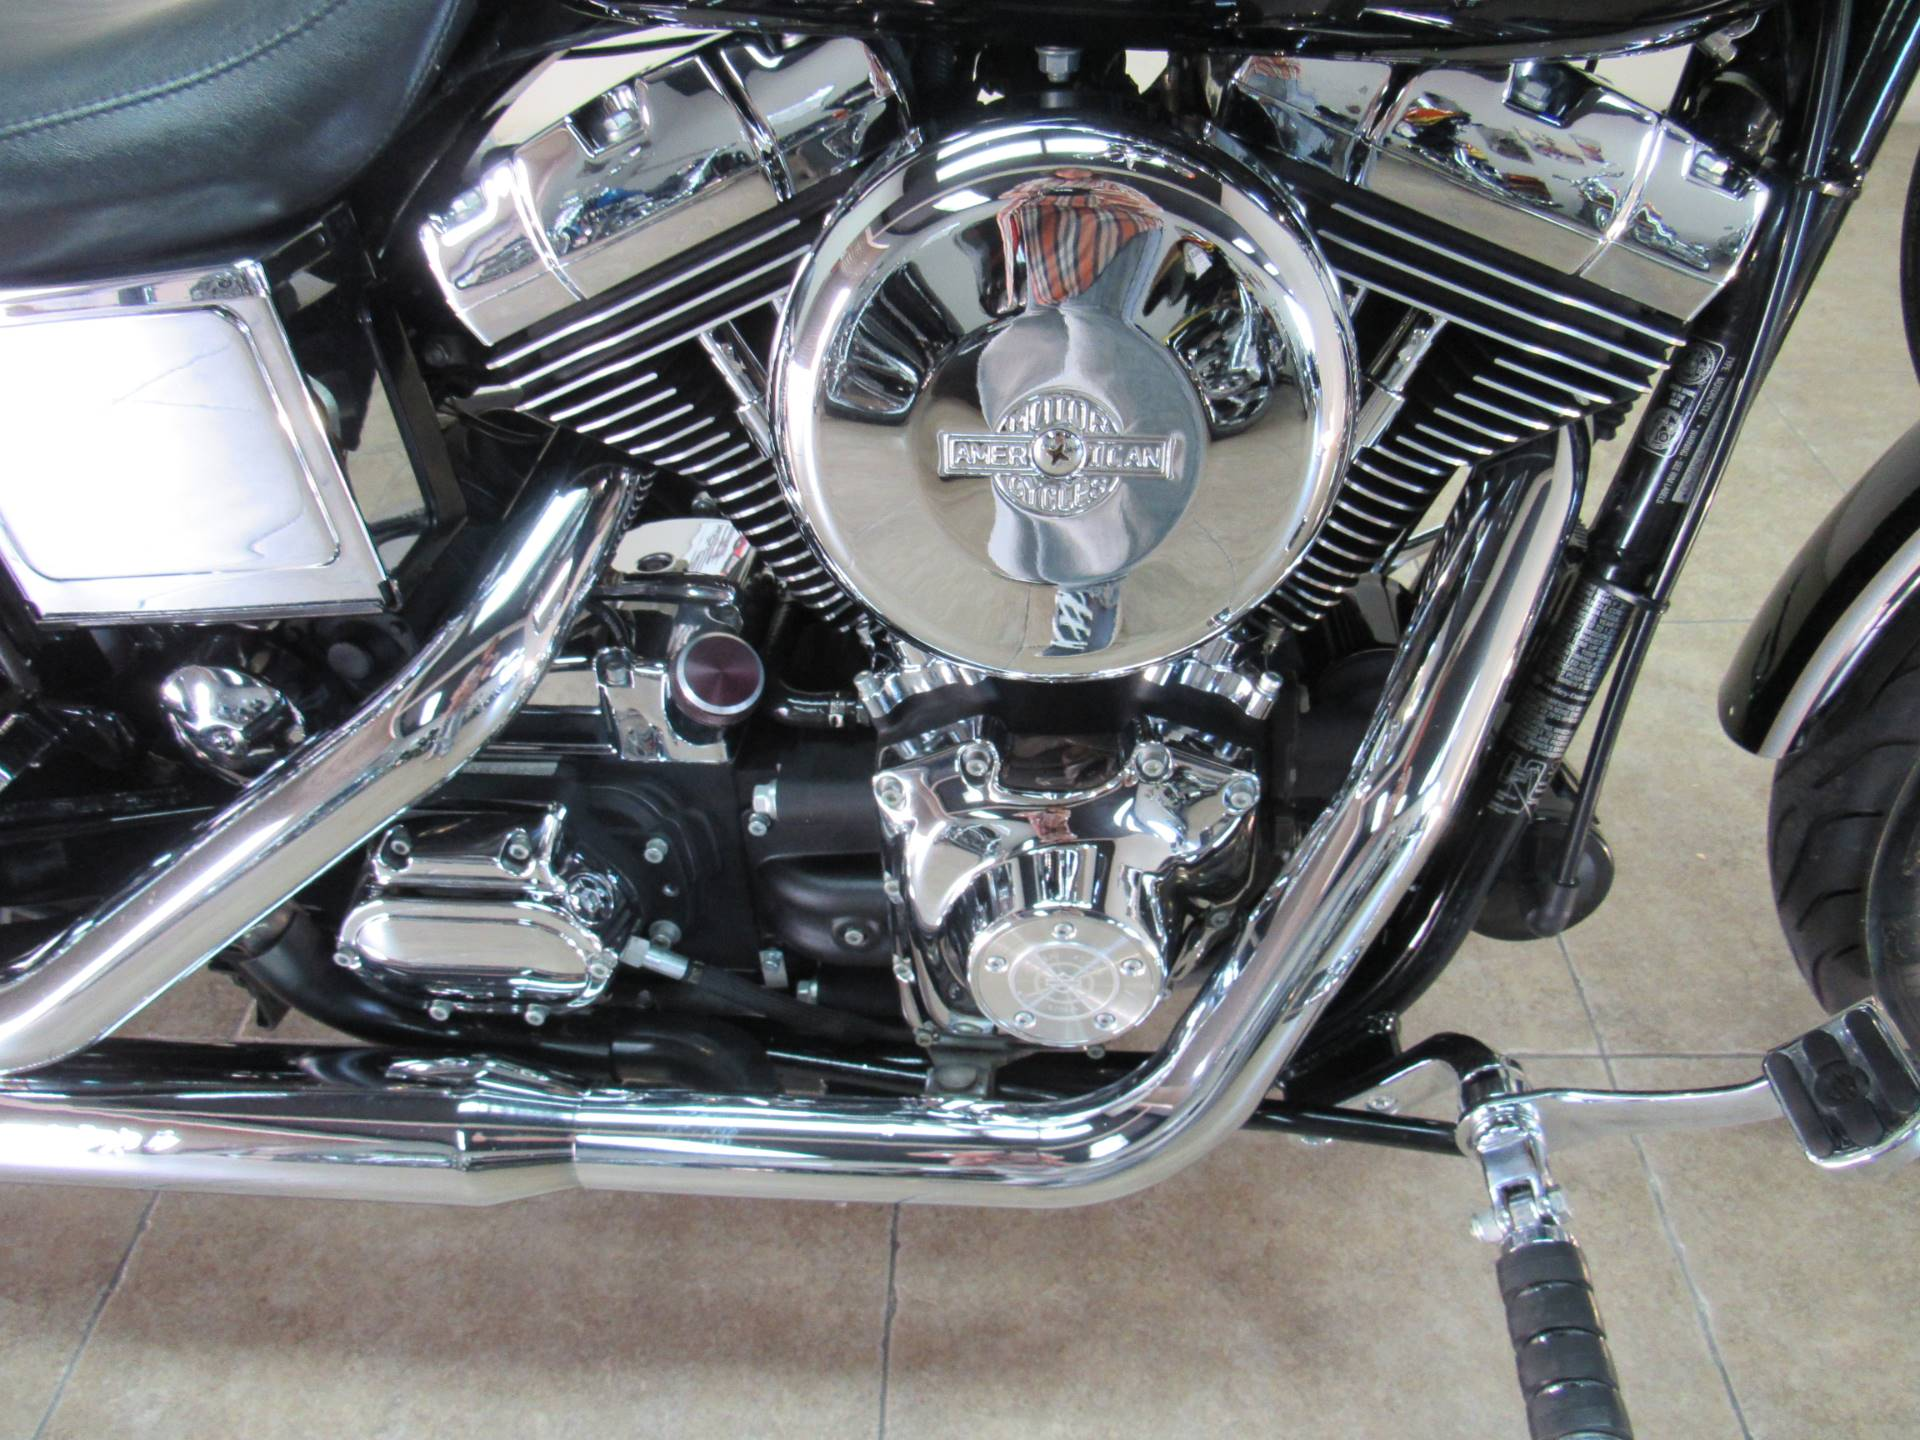 2003 Harley-Davidson FXDL Dyna Low Rider® in Temecula, California - Photo 6